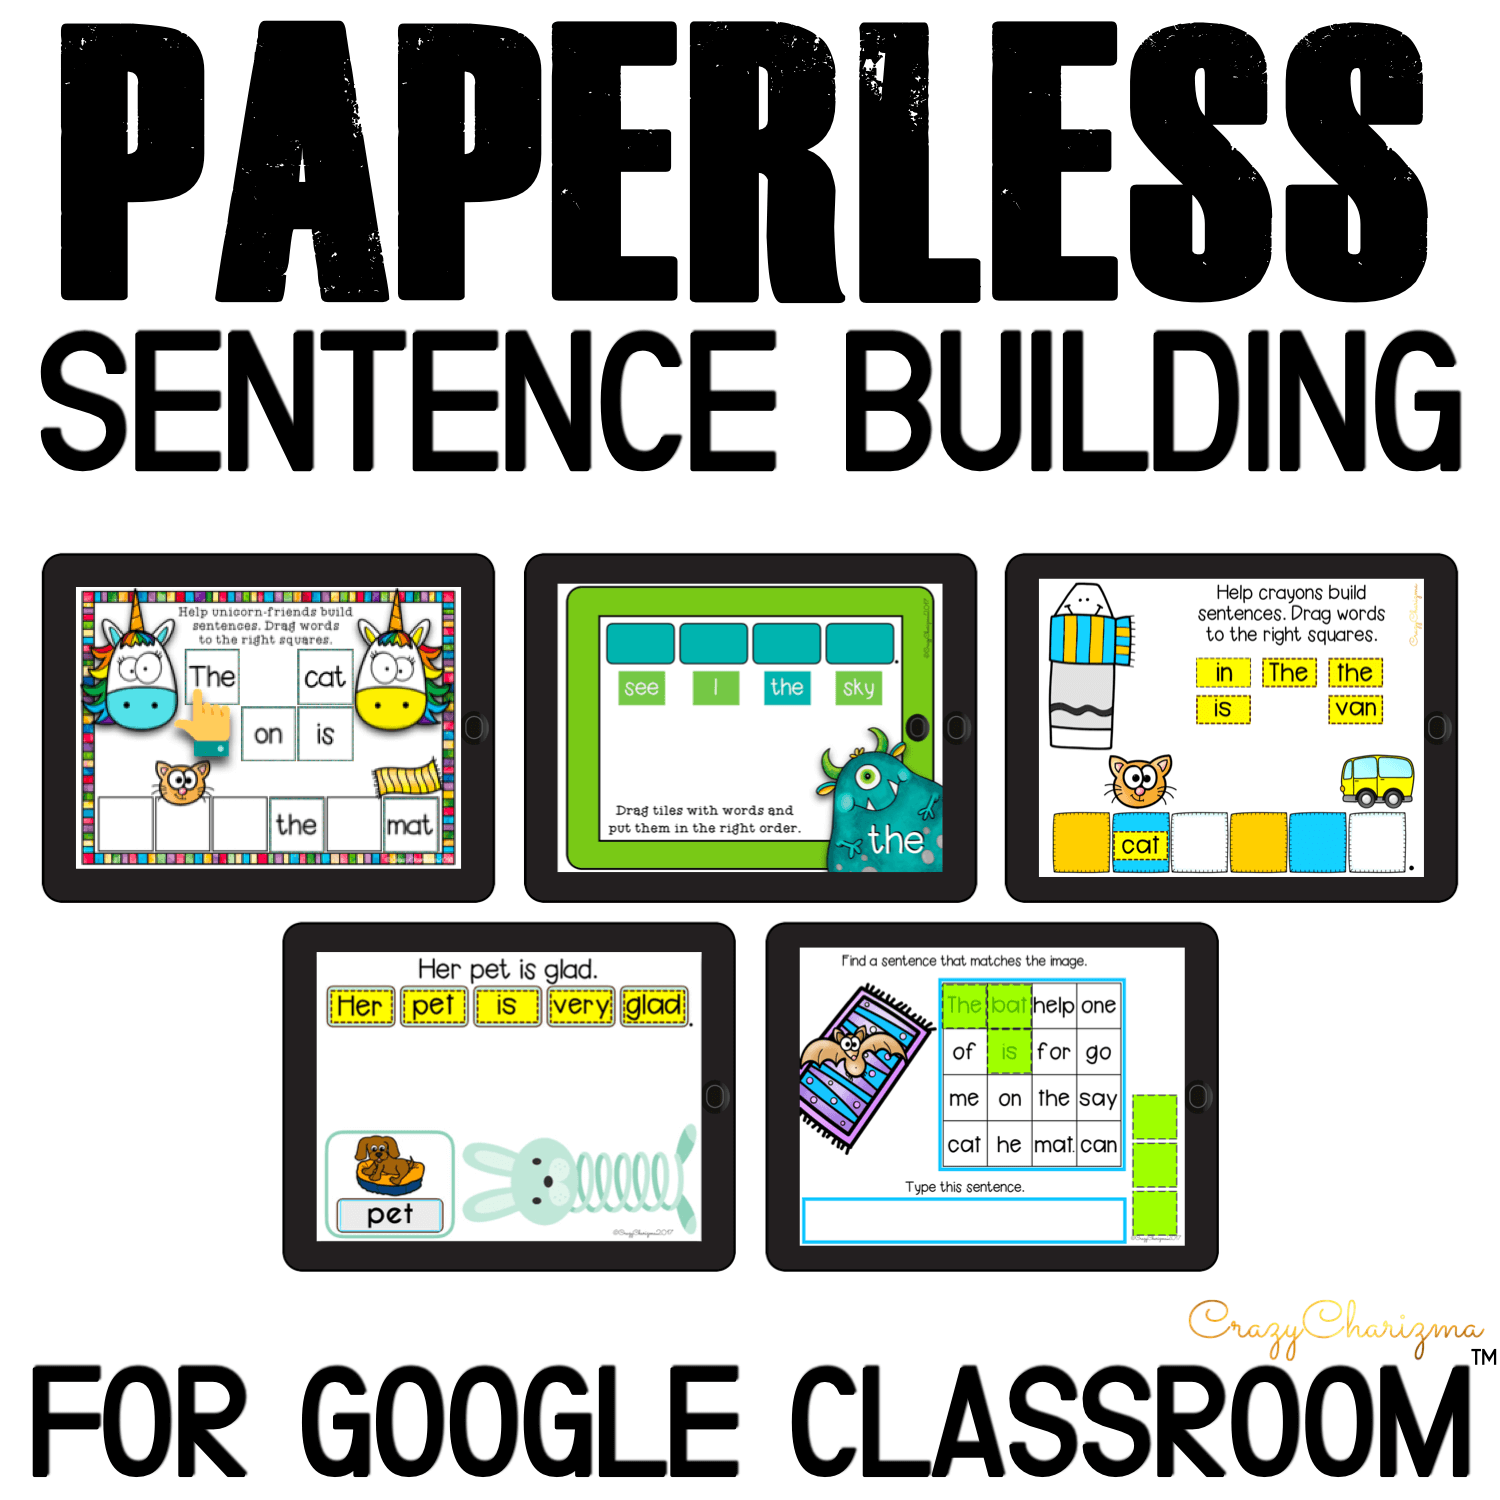 Are you looking for fun ways to practice sentence building during distance learning? Check out the bundle of Google Classroom activities with engaging ways to practice building sentences for kids!